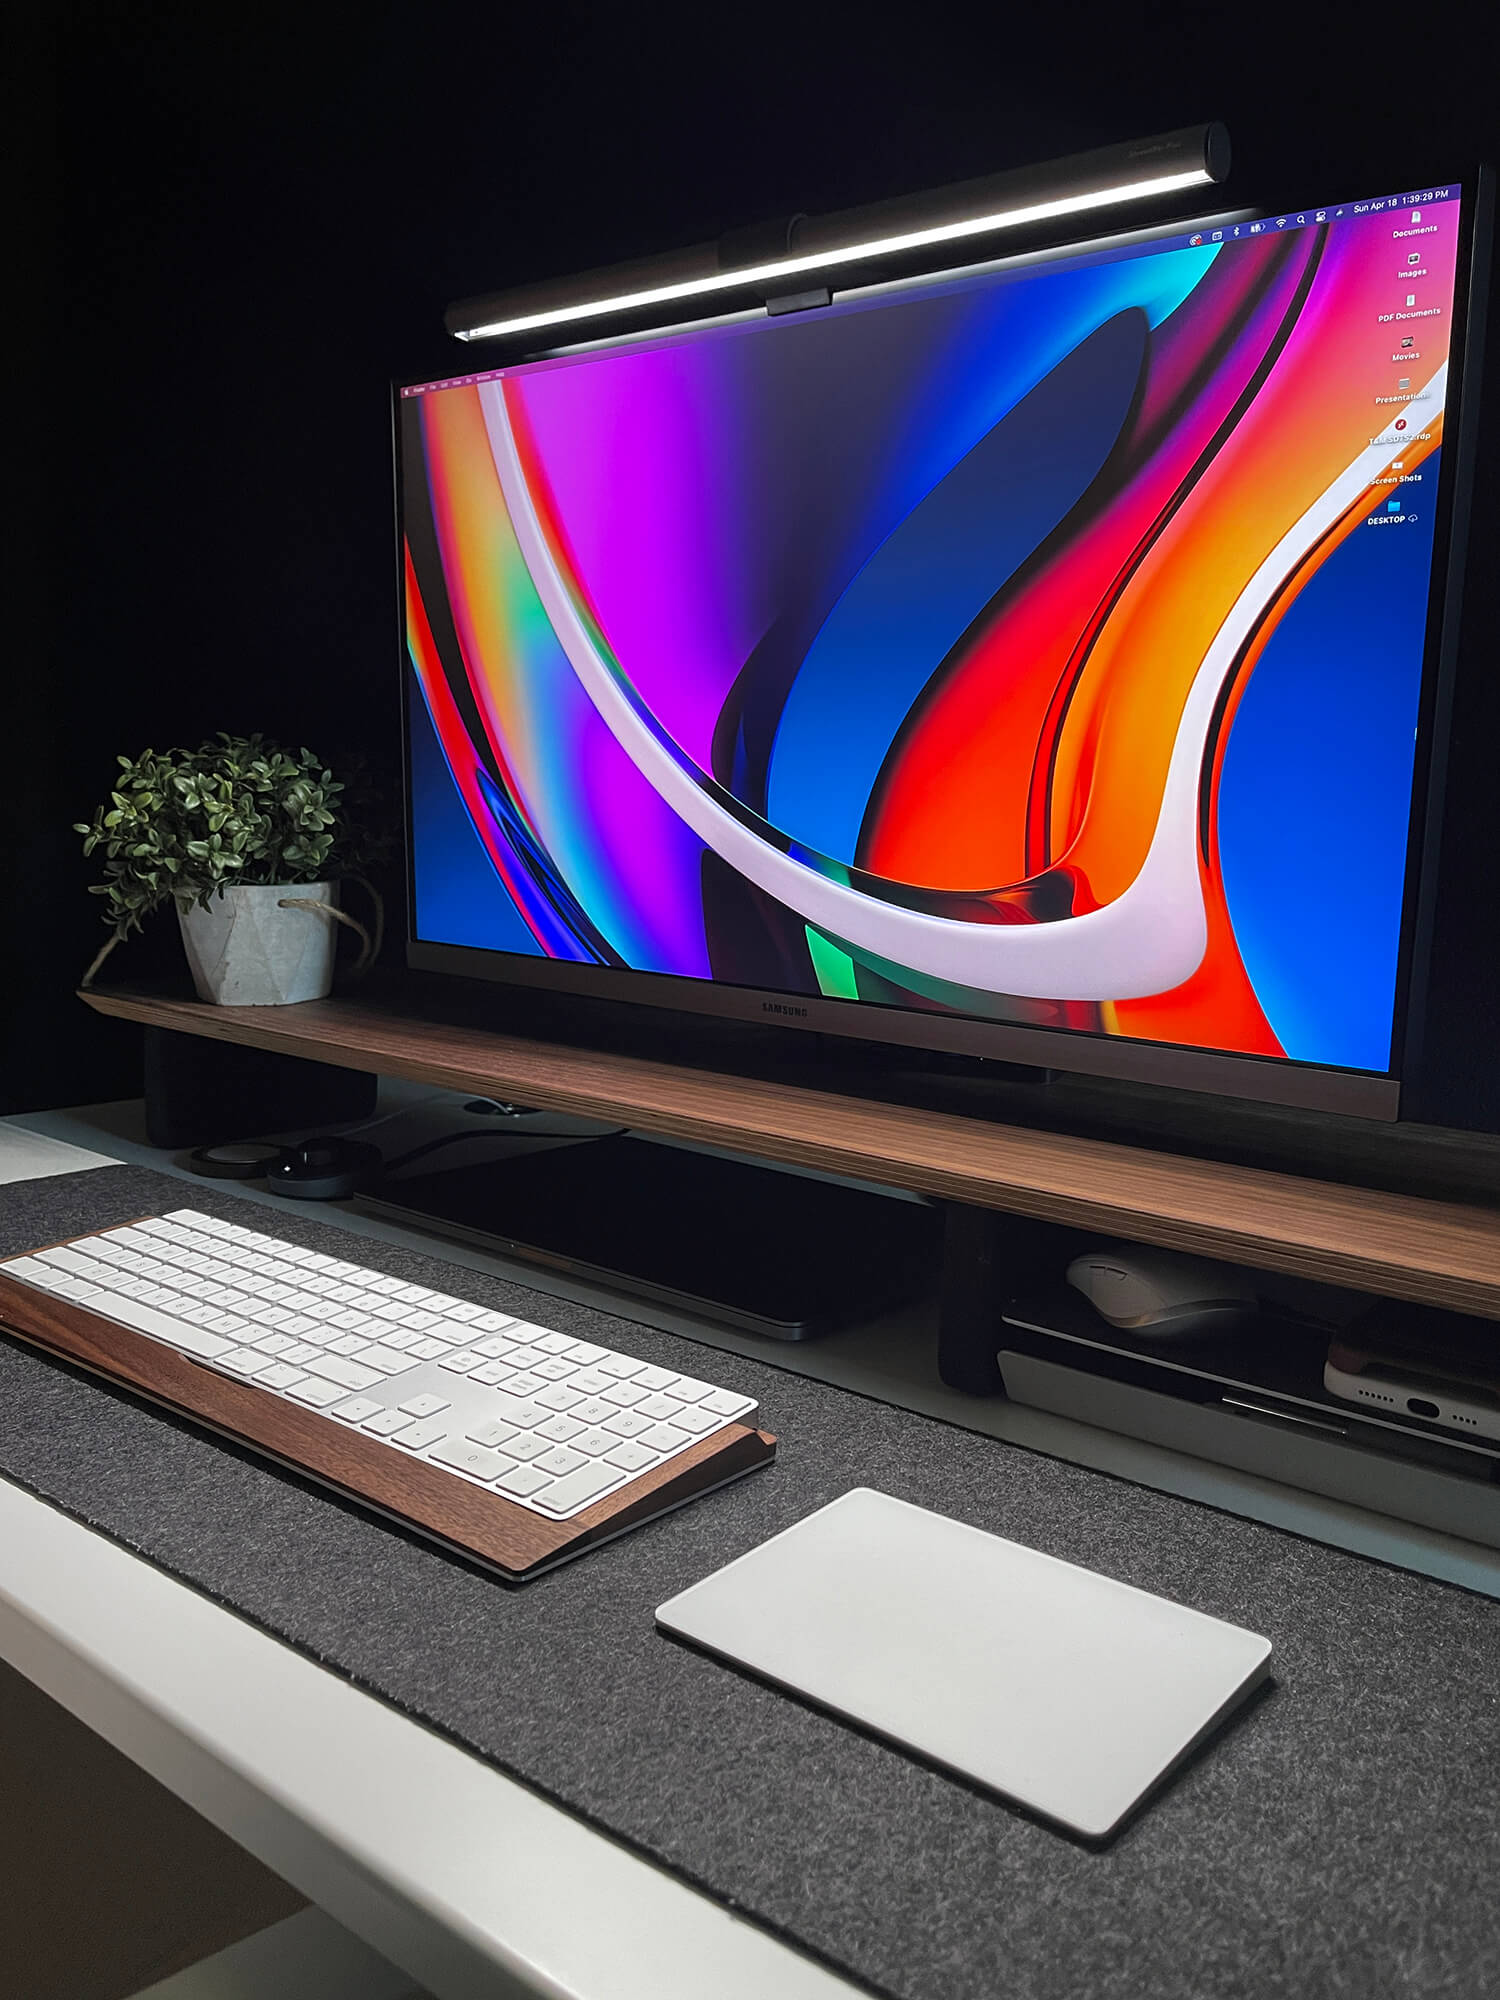 Lizz works from eight to ten hours a day, so good lighting is critical to her productivity. She can easily change the brightness and colour temperature at any time using the desktop dial.